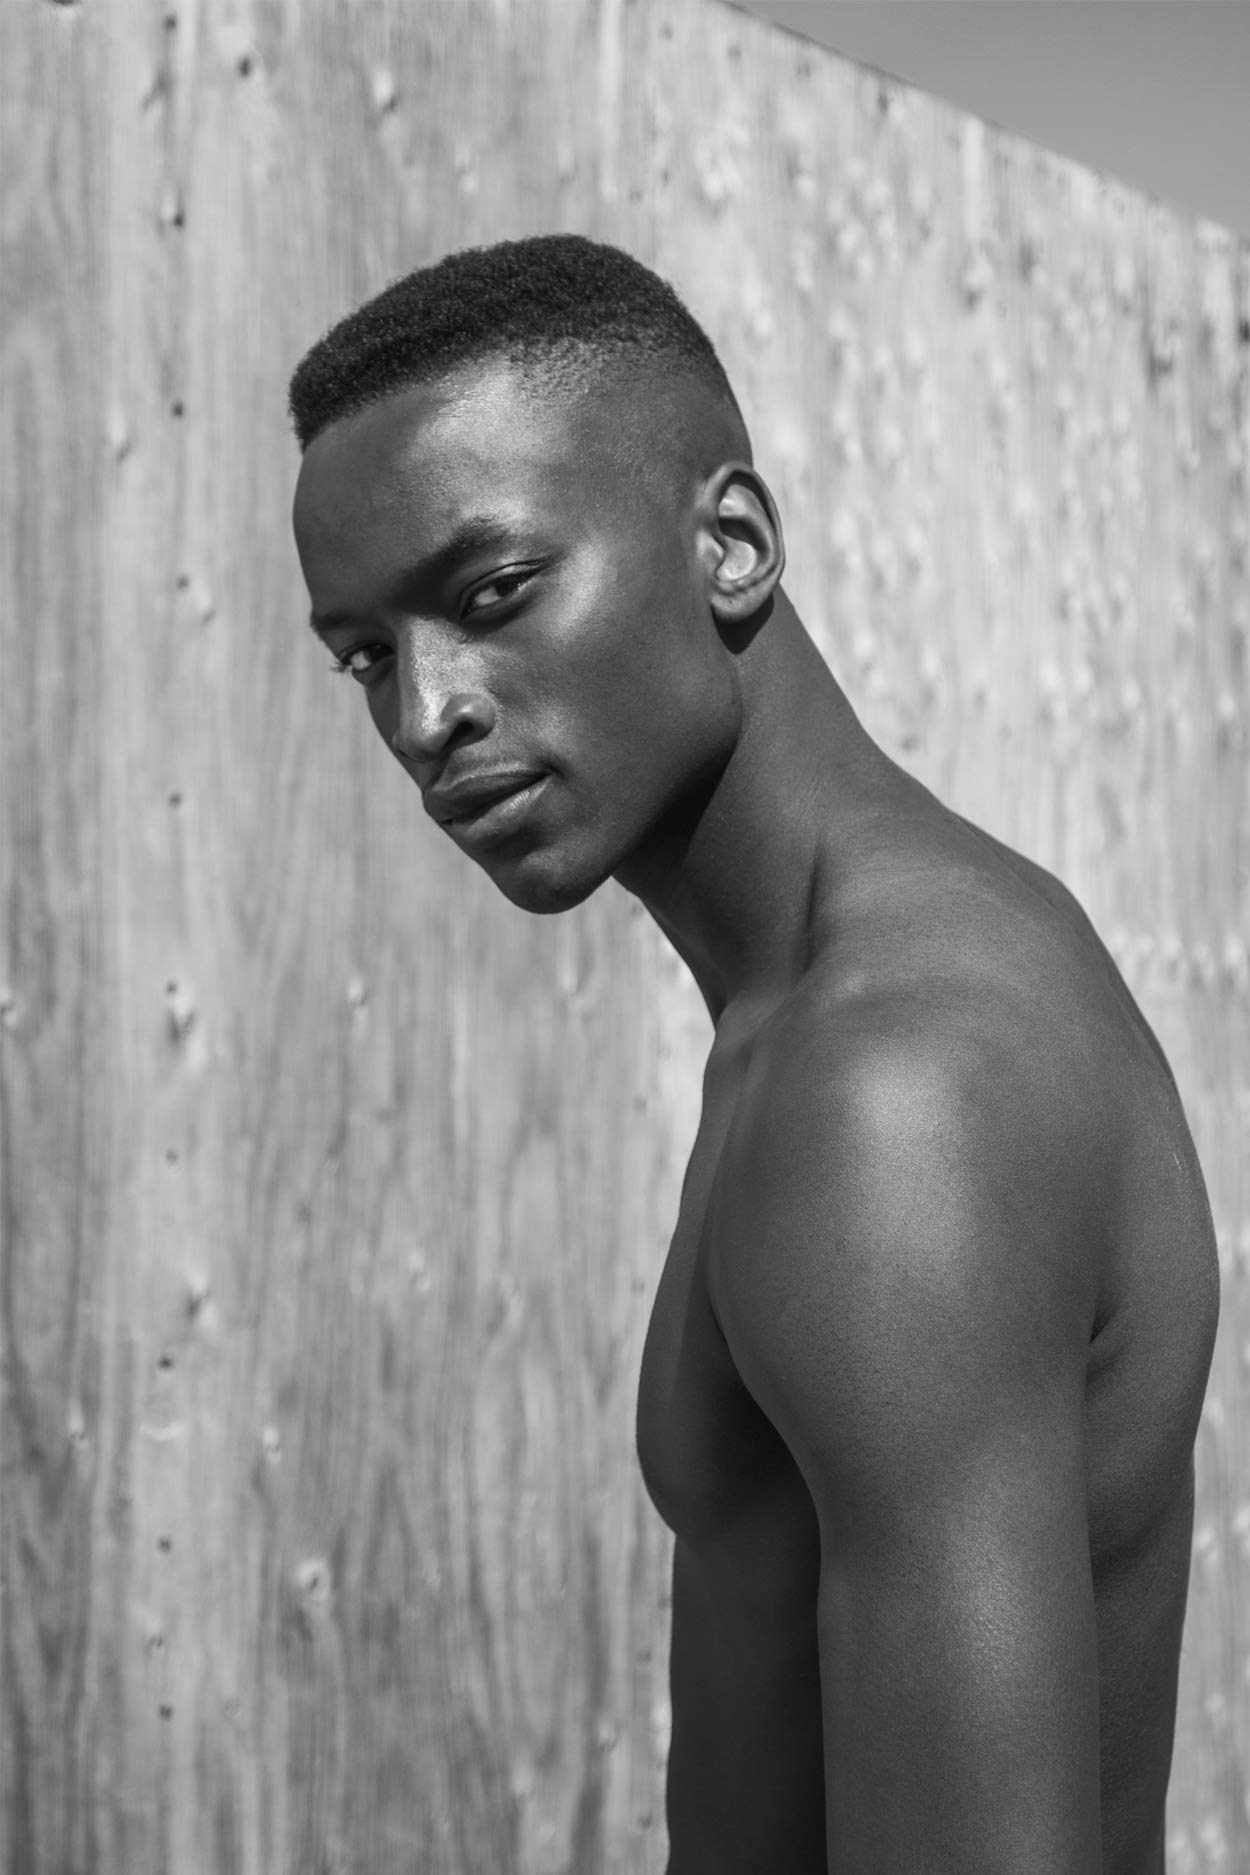 Oliver Kumbi by Eeva Suutari- Top Black Male Model Story for Sagaboi and Sagaboi.com.